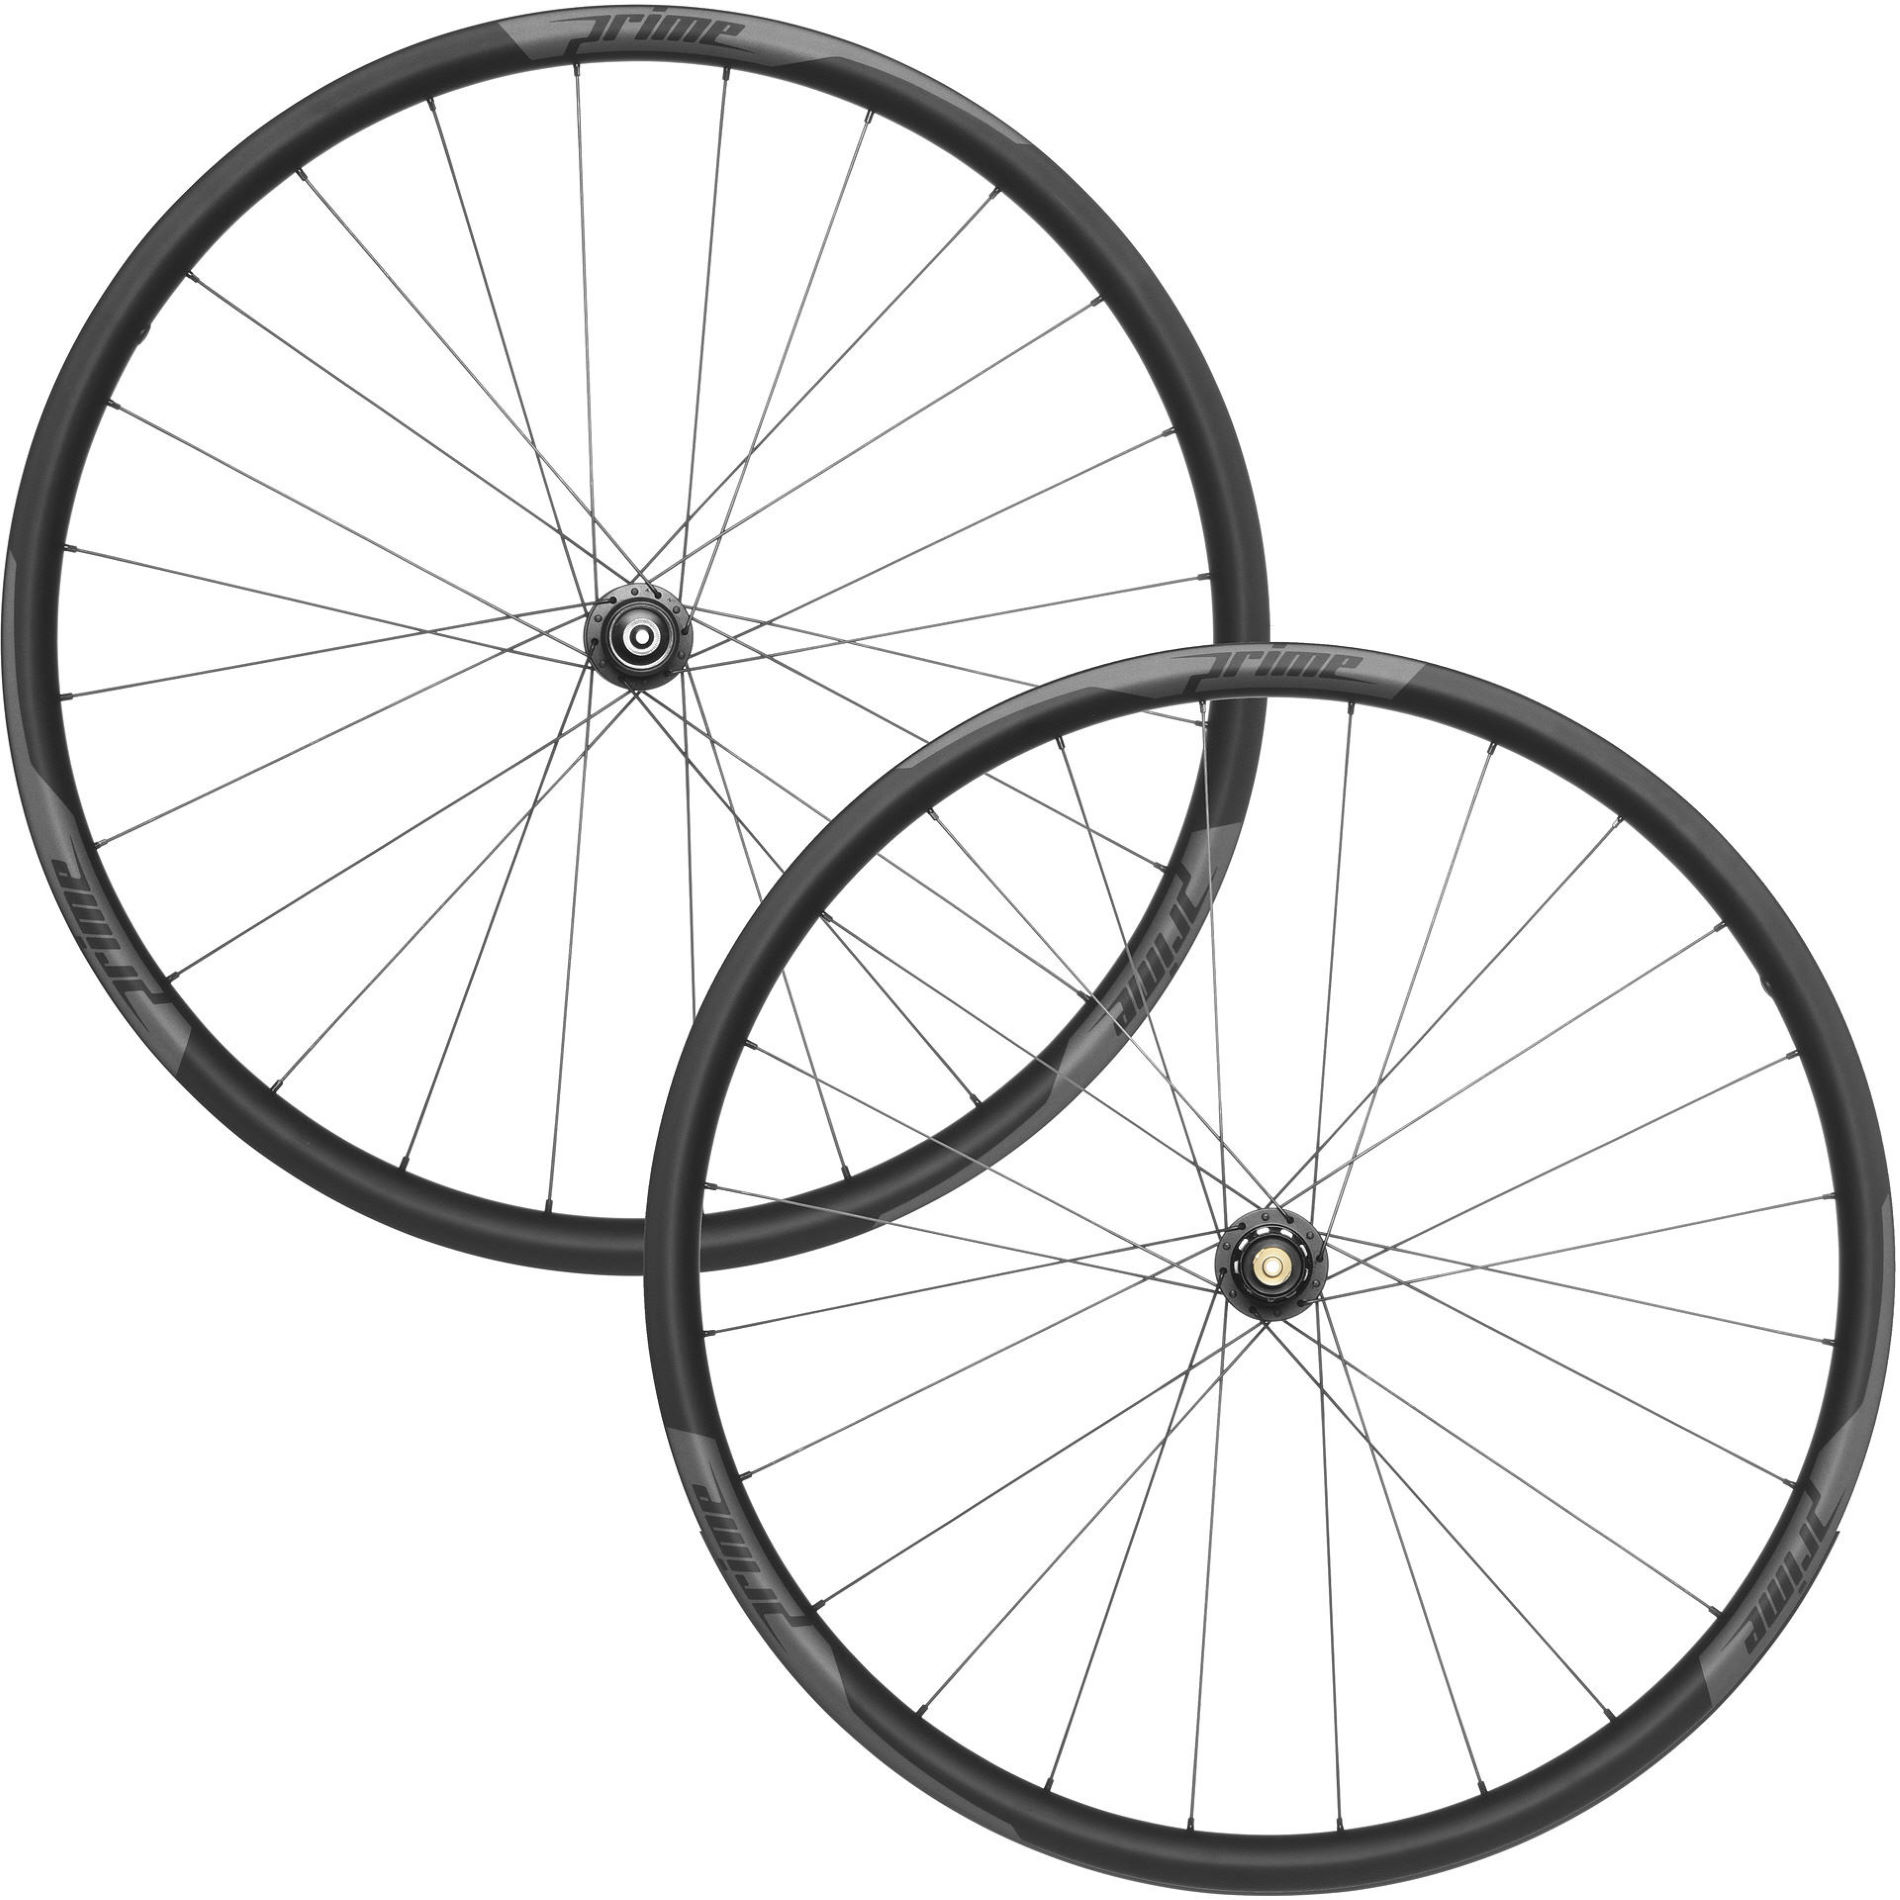 3d43198f332 Wiggle Cycle To Work | Prime RP-28 Carbon Clincher Disc Road ...